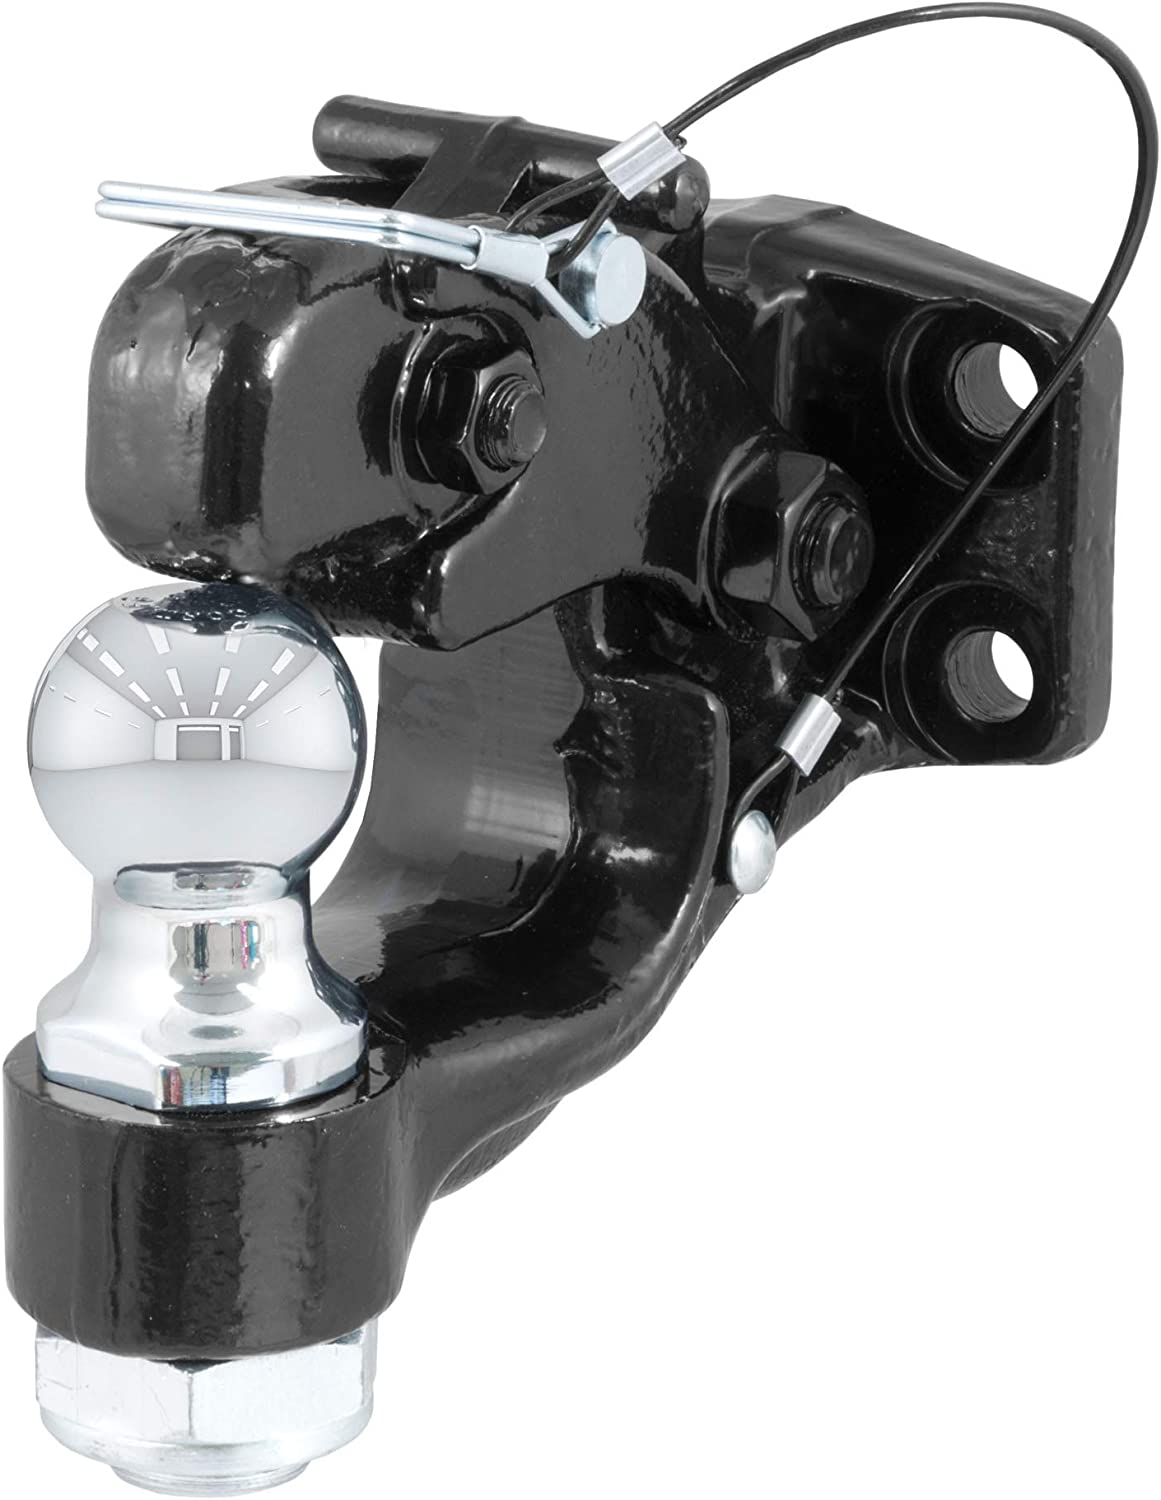 CURT 48180 Pintle Hitch with 1-7/8-Inch Trailer Hitch Ball, 16,000 lbs. Capacity, Pintle Mount Required